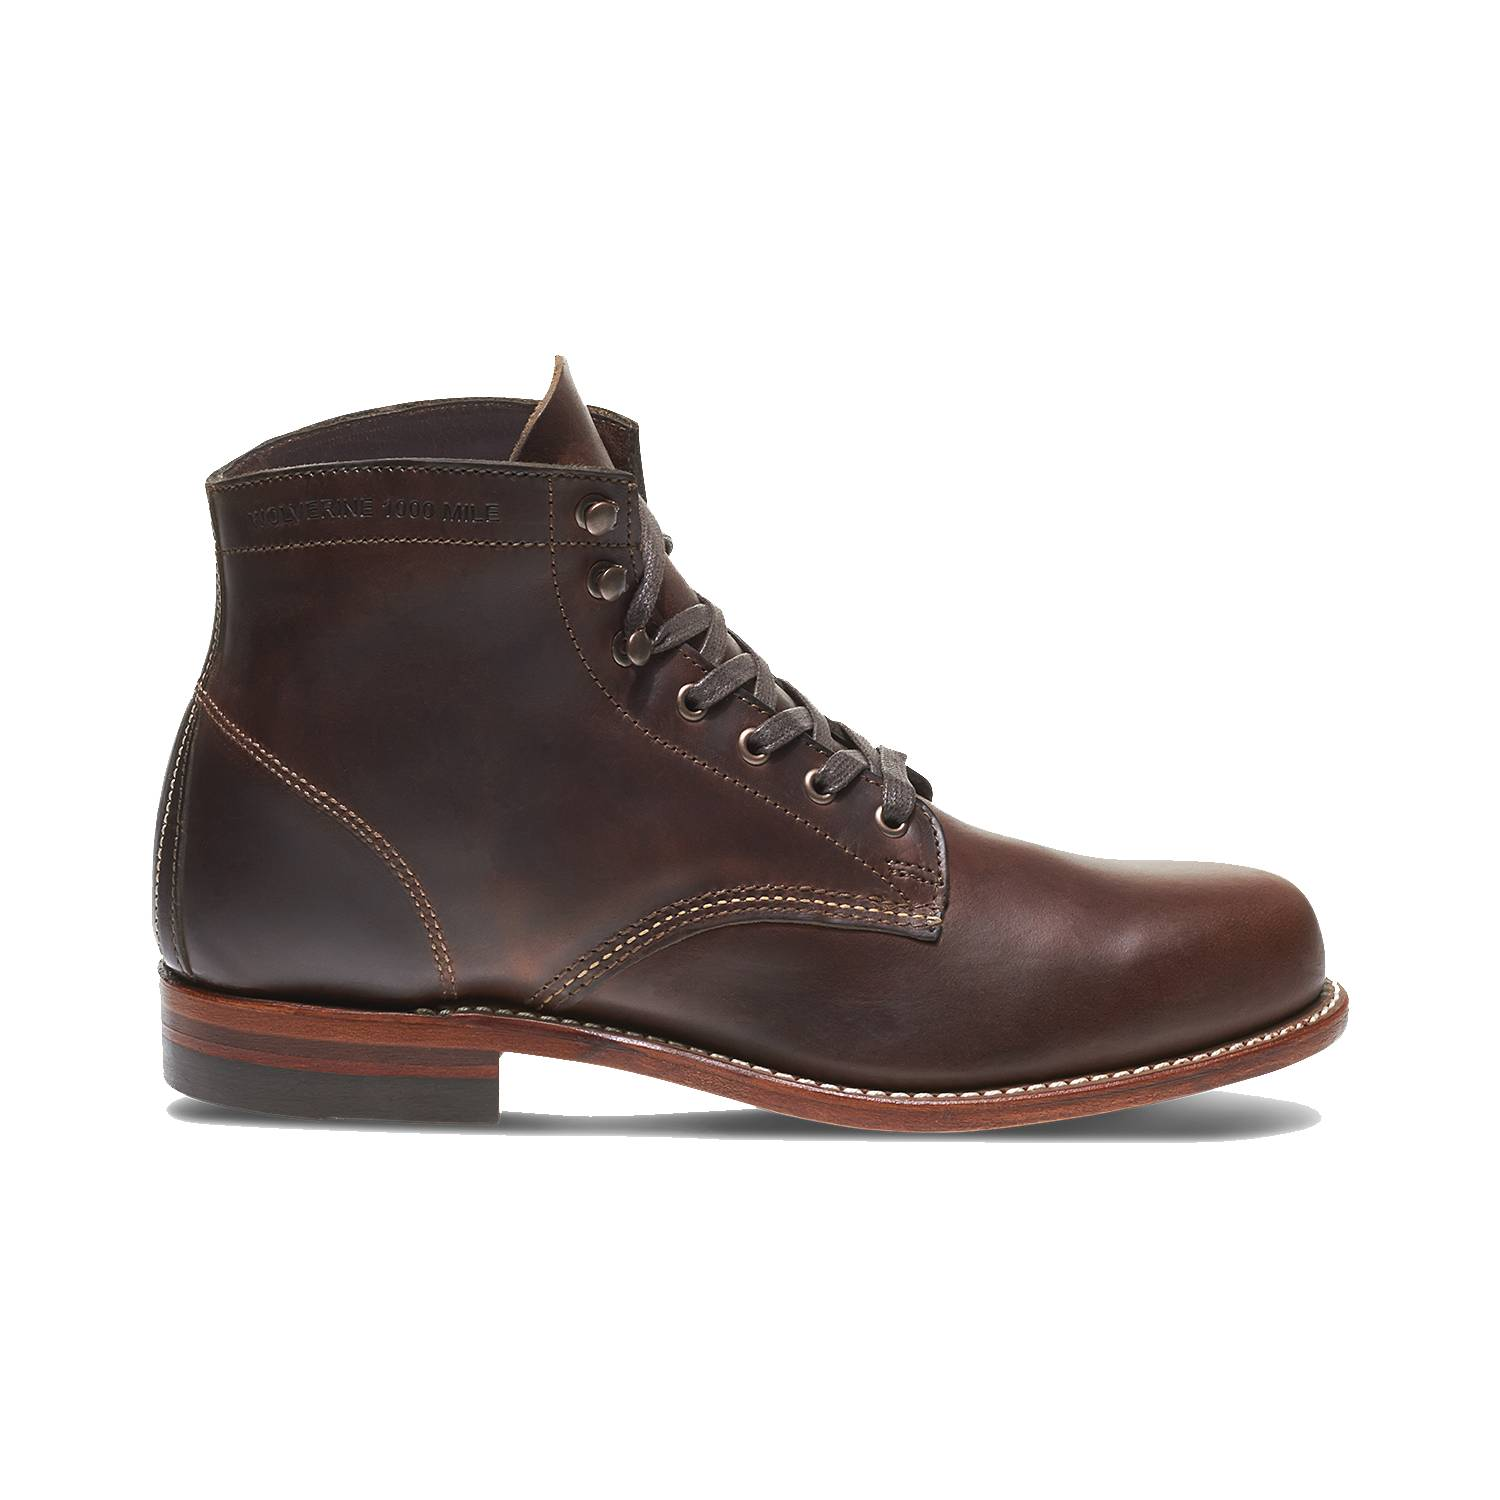 Wolverine-1000-Mile-Men-039-s-Leather-Boots-Cordovan-8-Black-Brown-Rust thumbnail 9